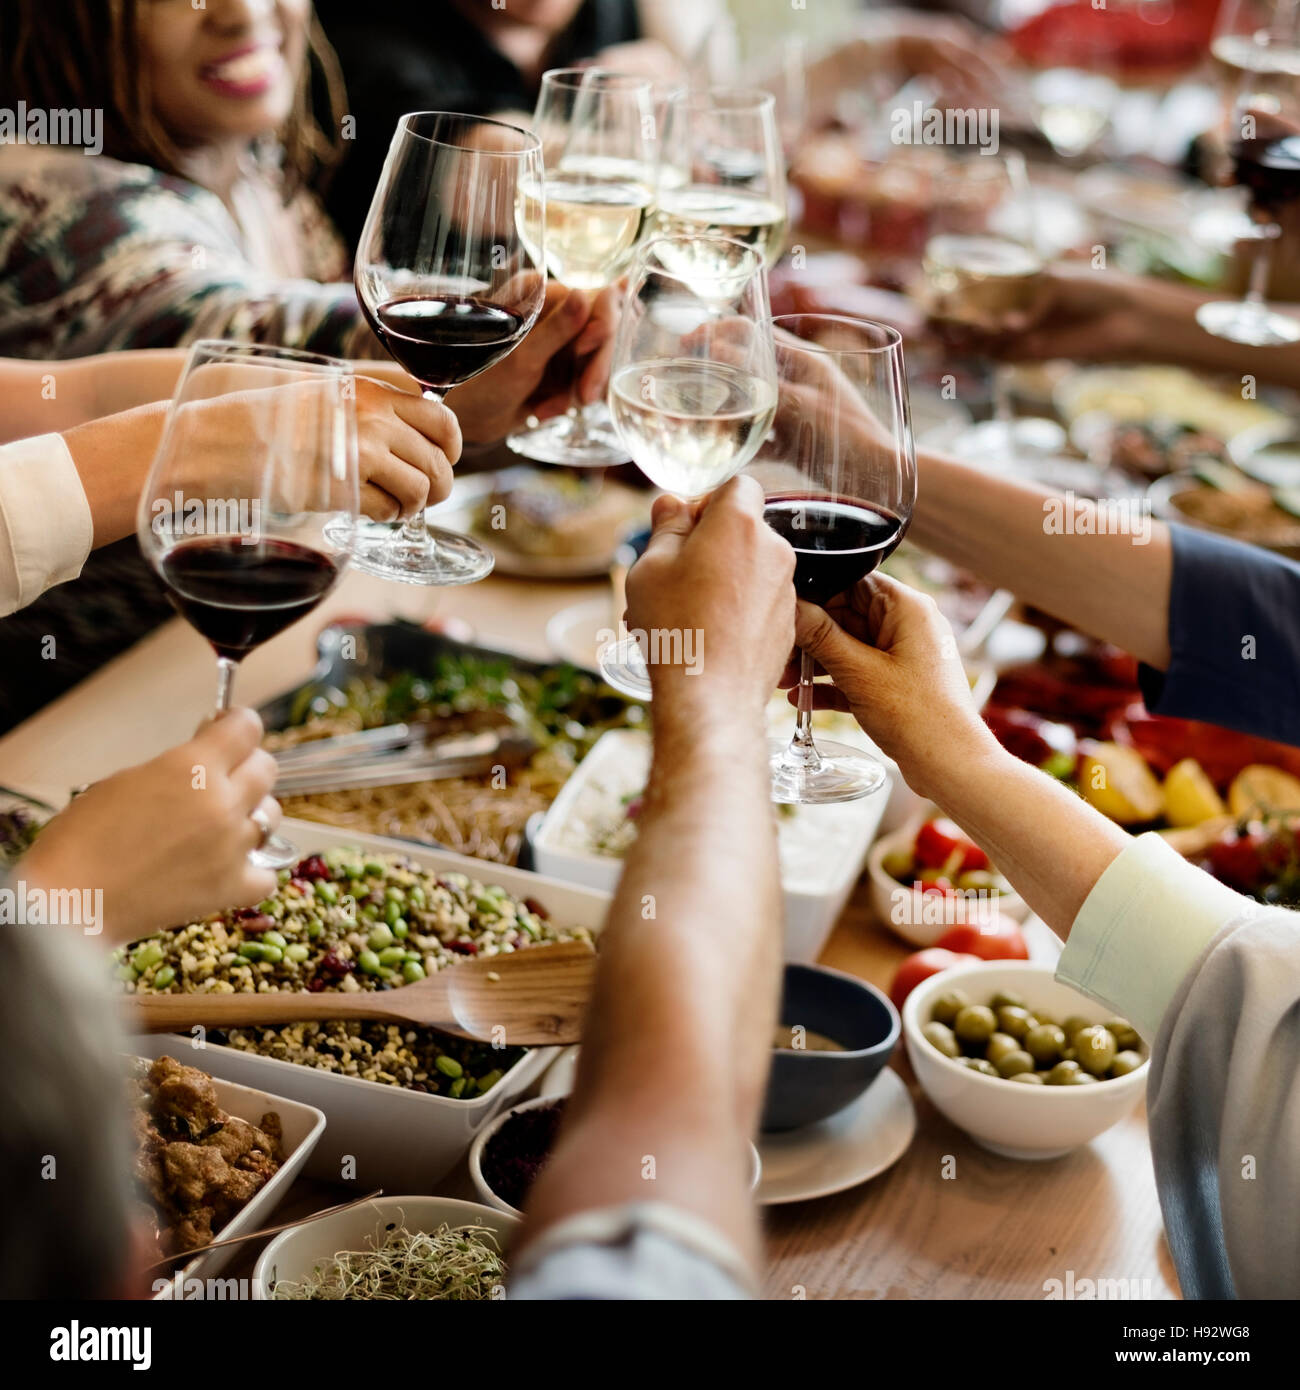 Brunch Choice Crowd Dining Food Options Eating Concept - Stock Image